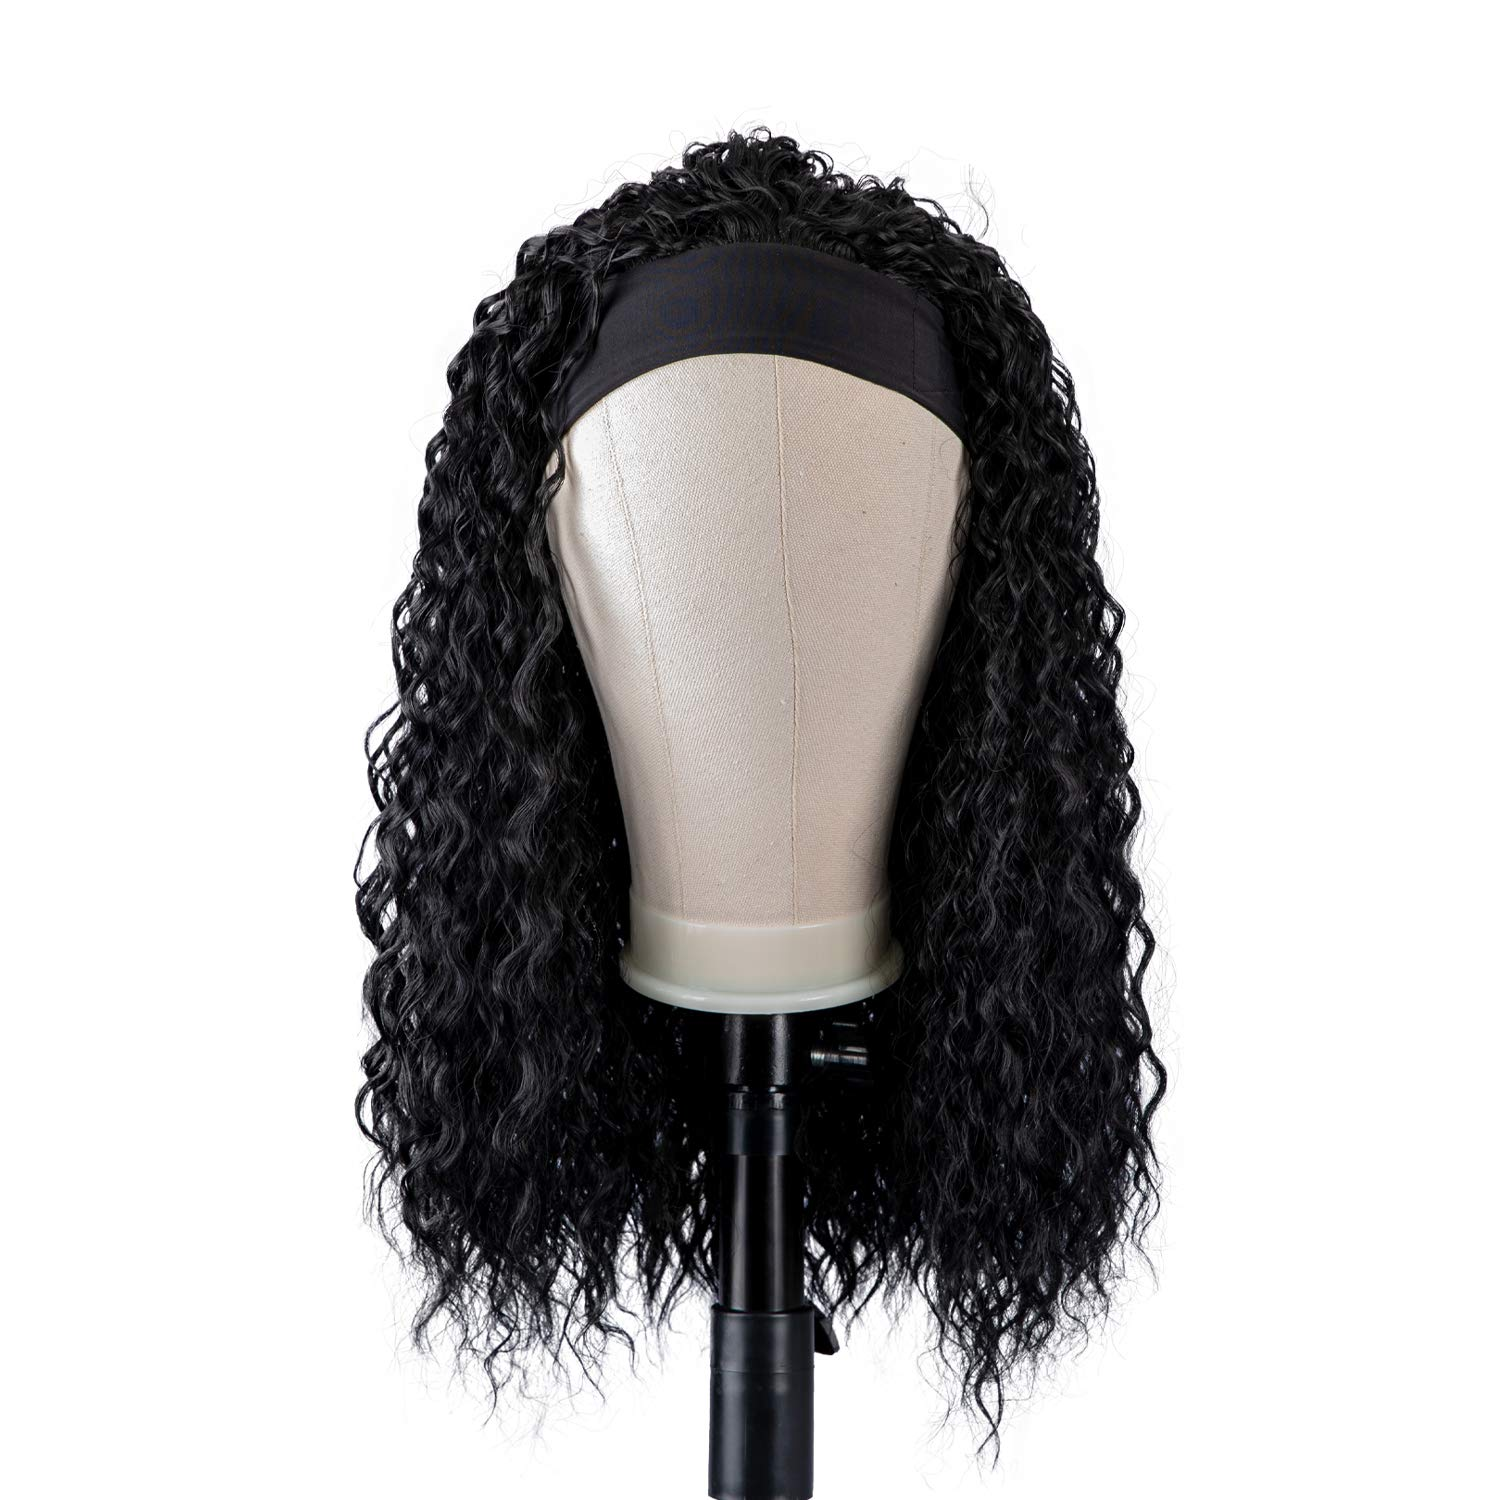 Popular shop is the lowest price challenge DreamSoul HeadBand Wig Curly Wavy Wave For Black Women Popular products Wigs